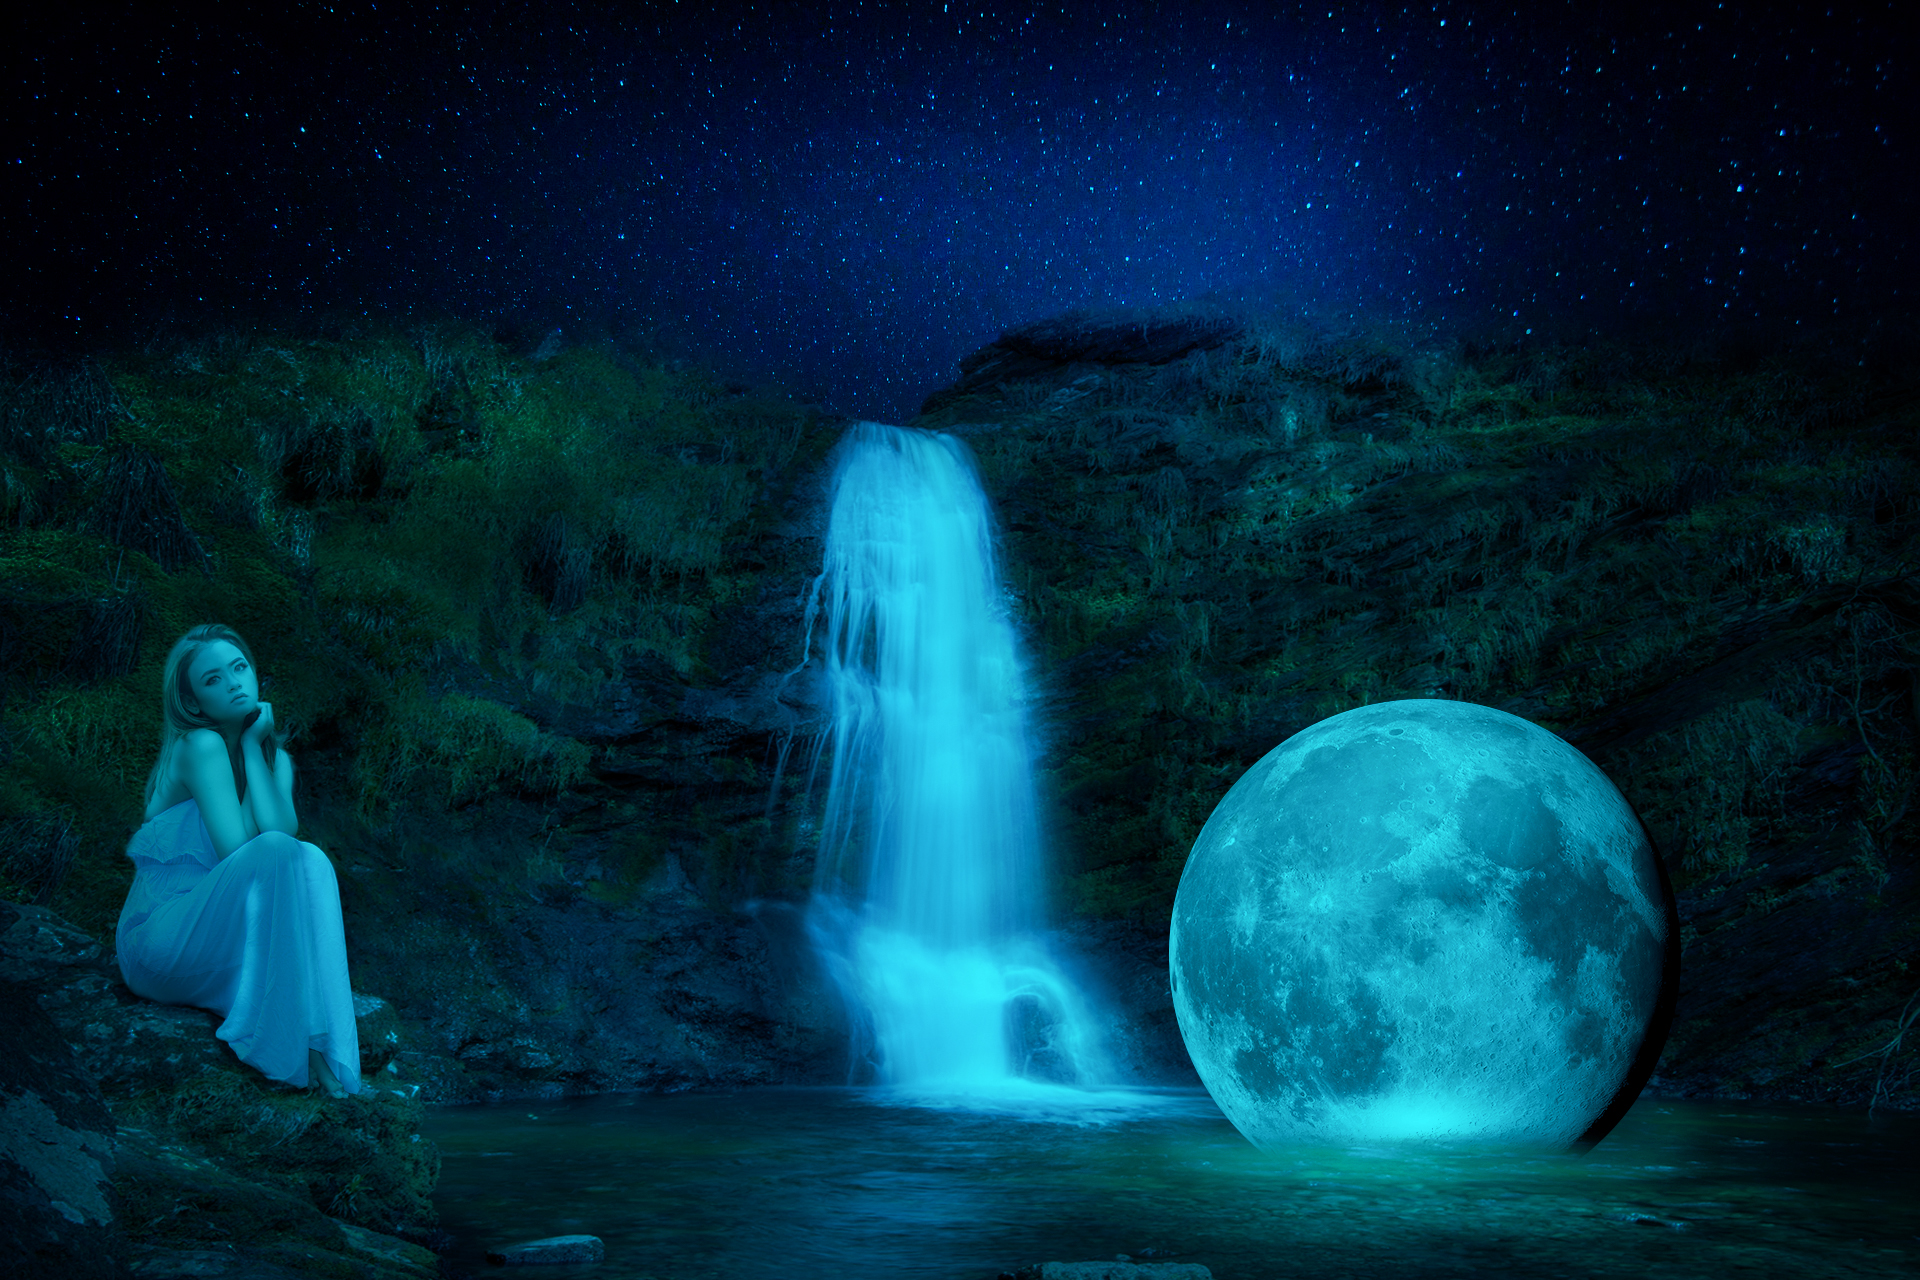 Dreamy Moon in the lake